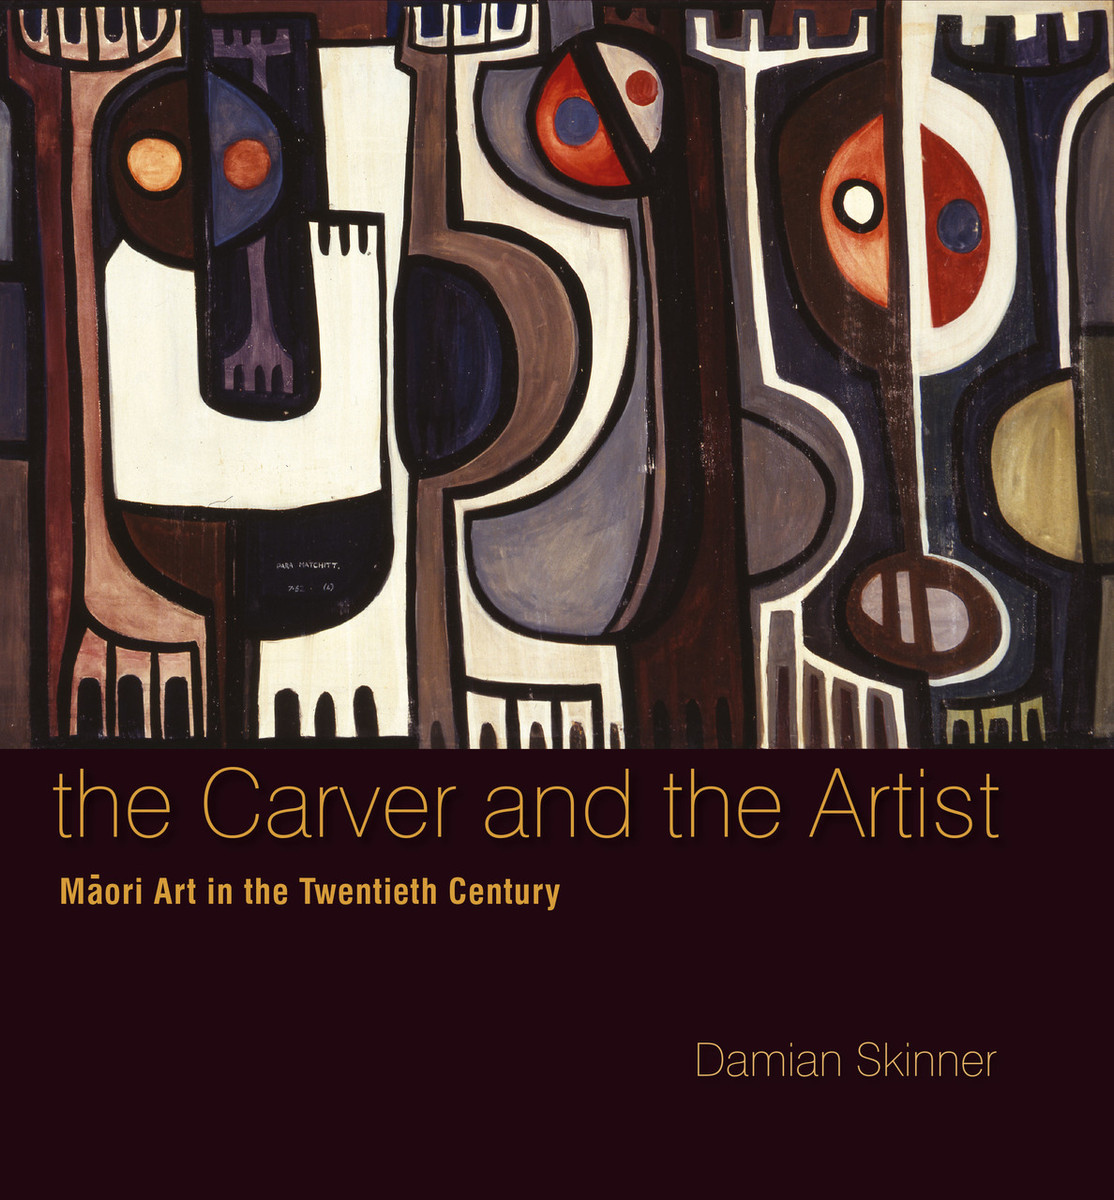 The Carver and the Artist: Māori Art in the Twentieth Century by Damian Skinner